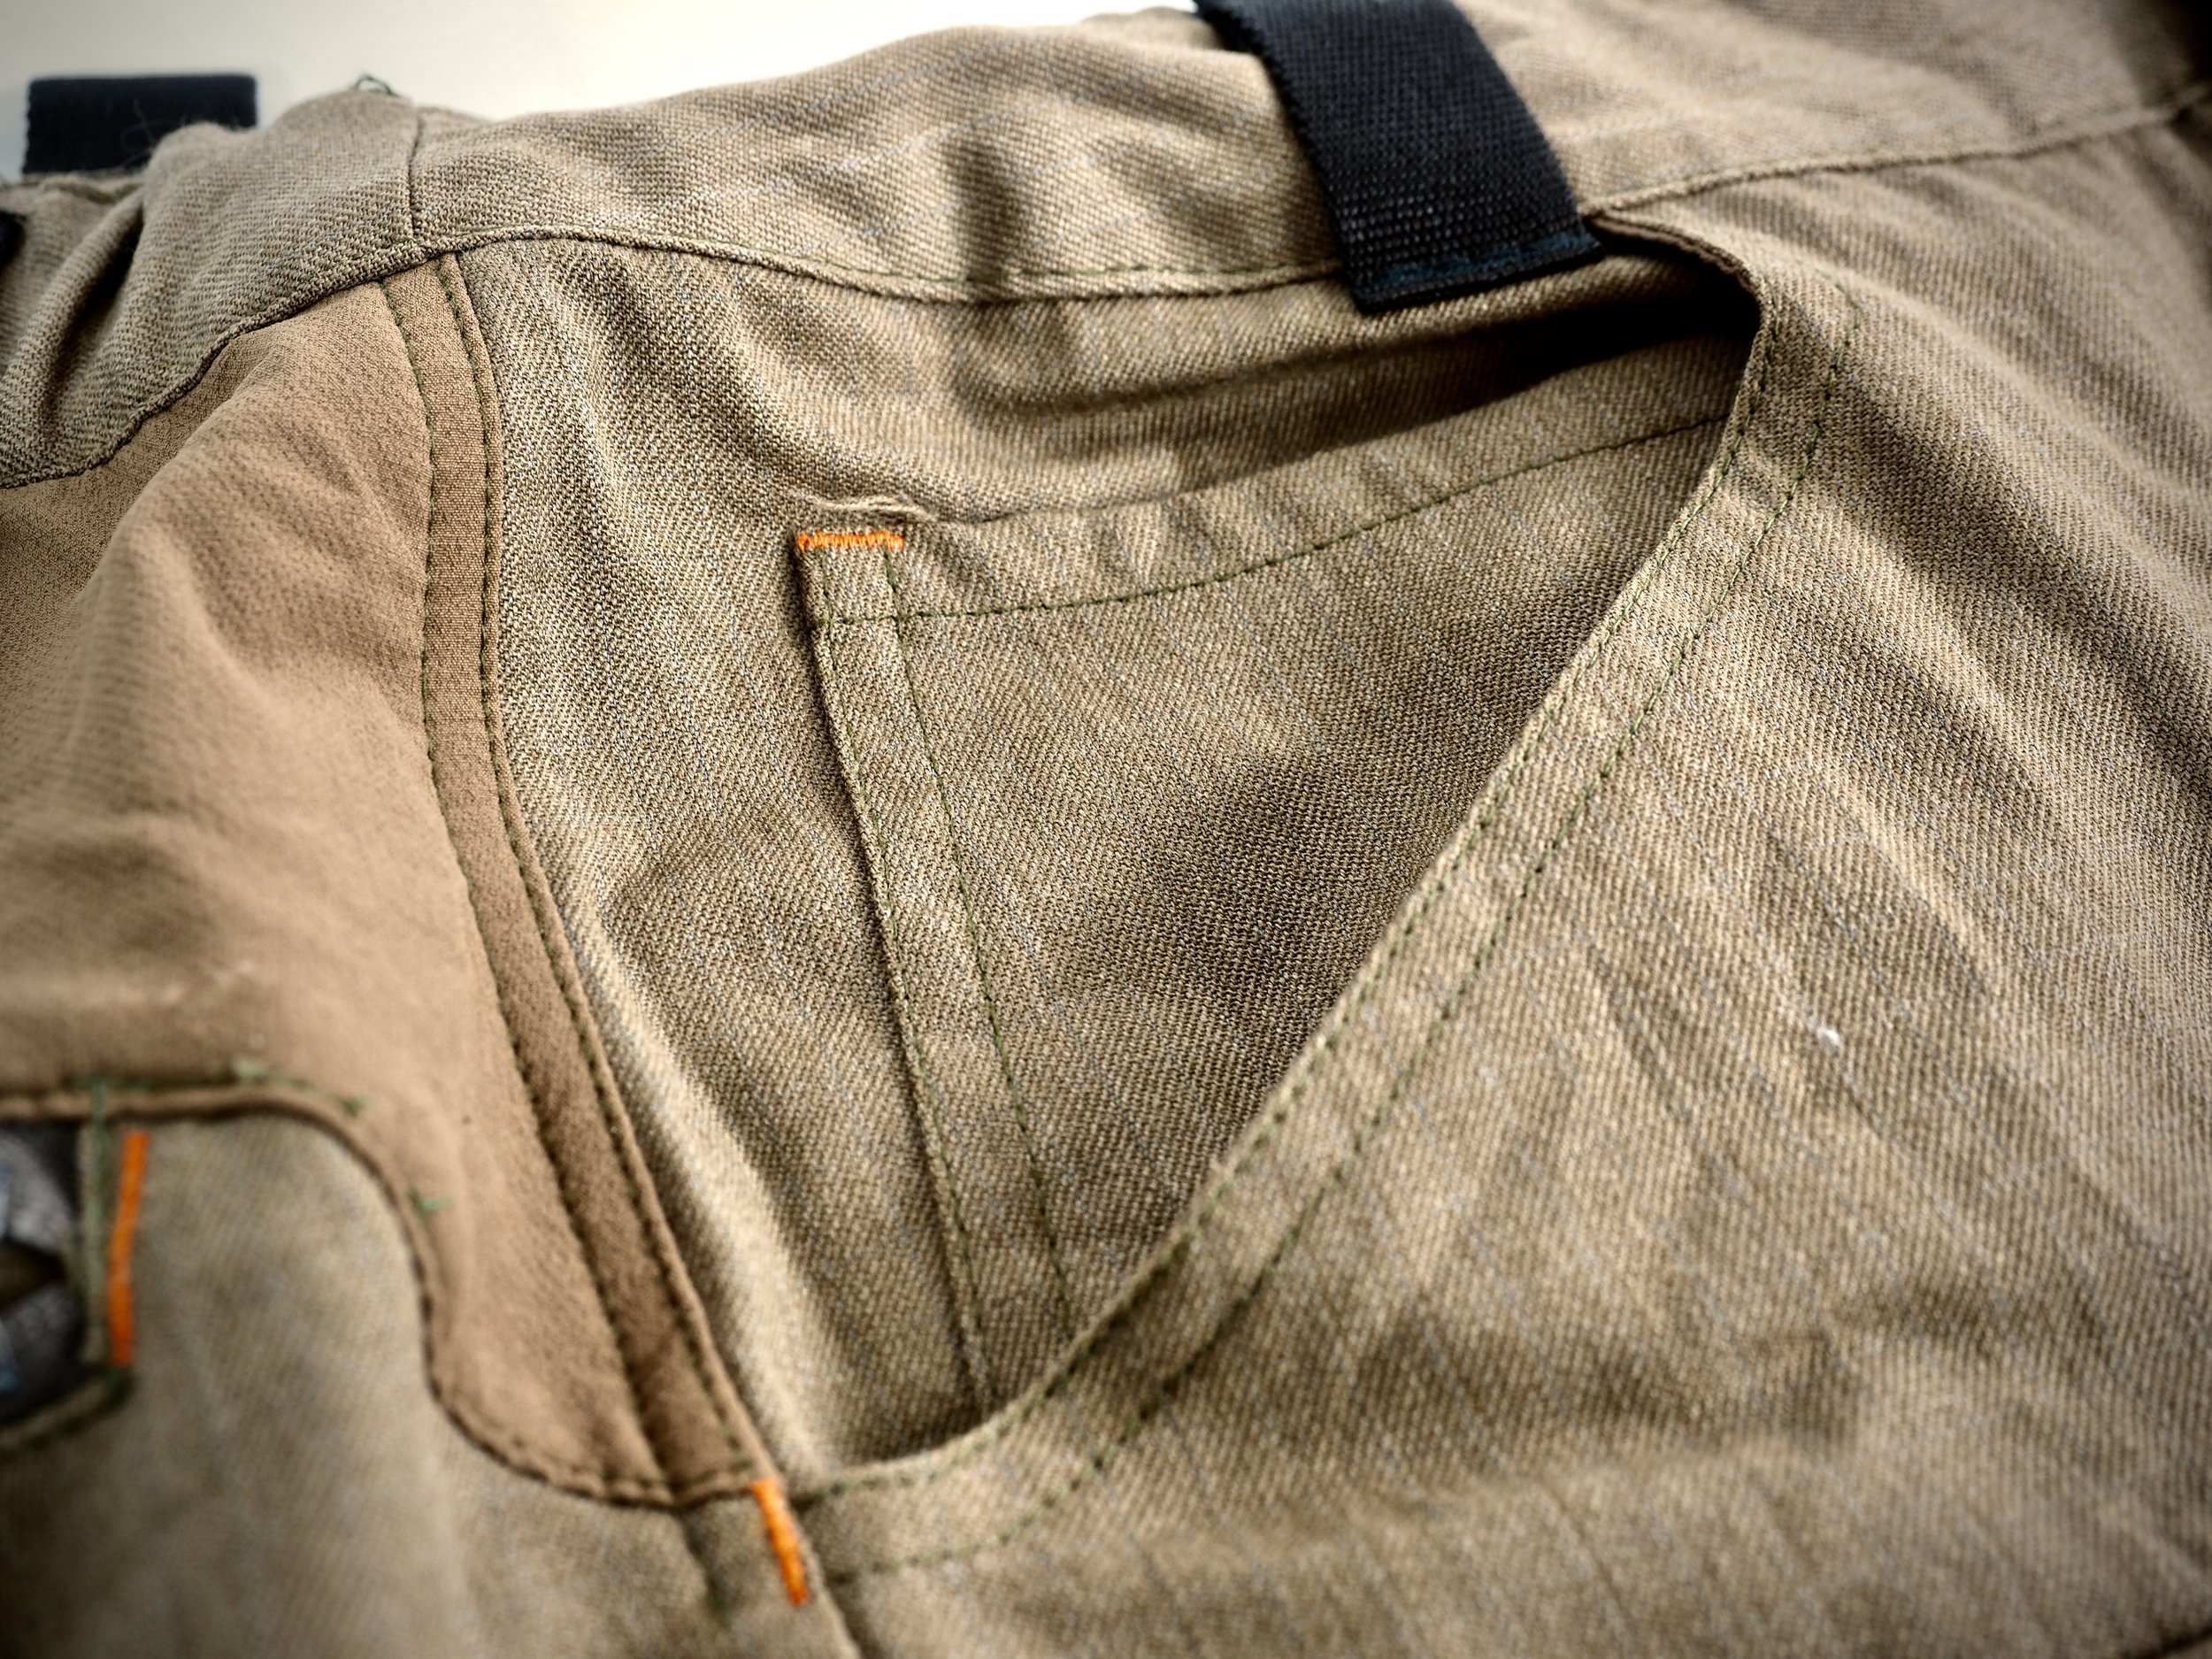 This is the 5th pocket. I'm not certain anyone even uses these pockets on their jeans, let alone on a pair of hunting pants, but nevertheless, it's there if you happen to have a use case for it.hT